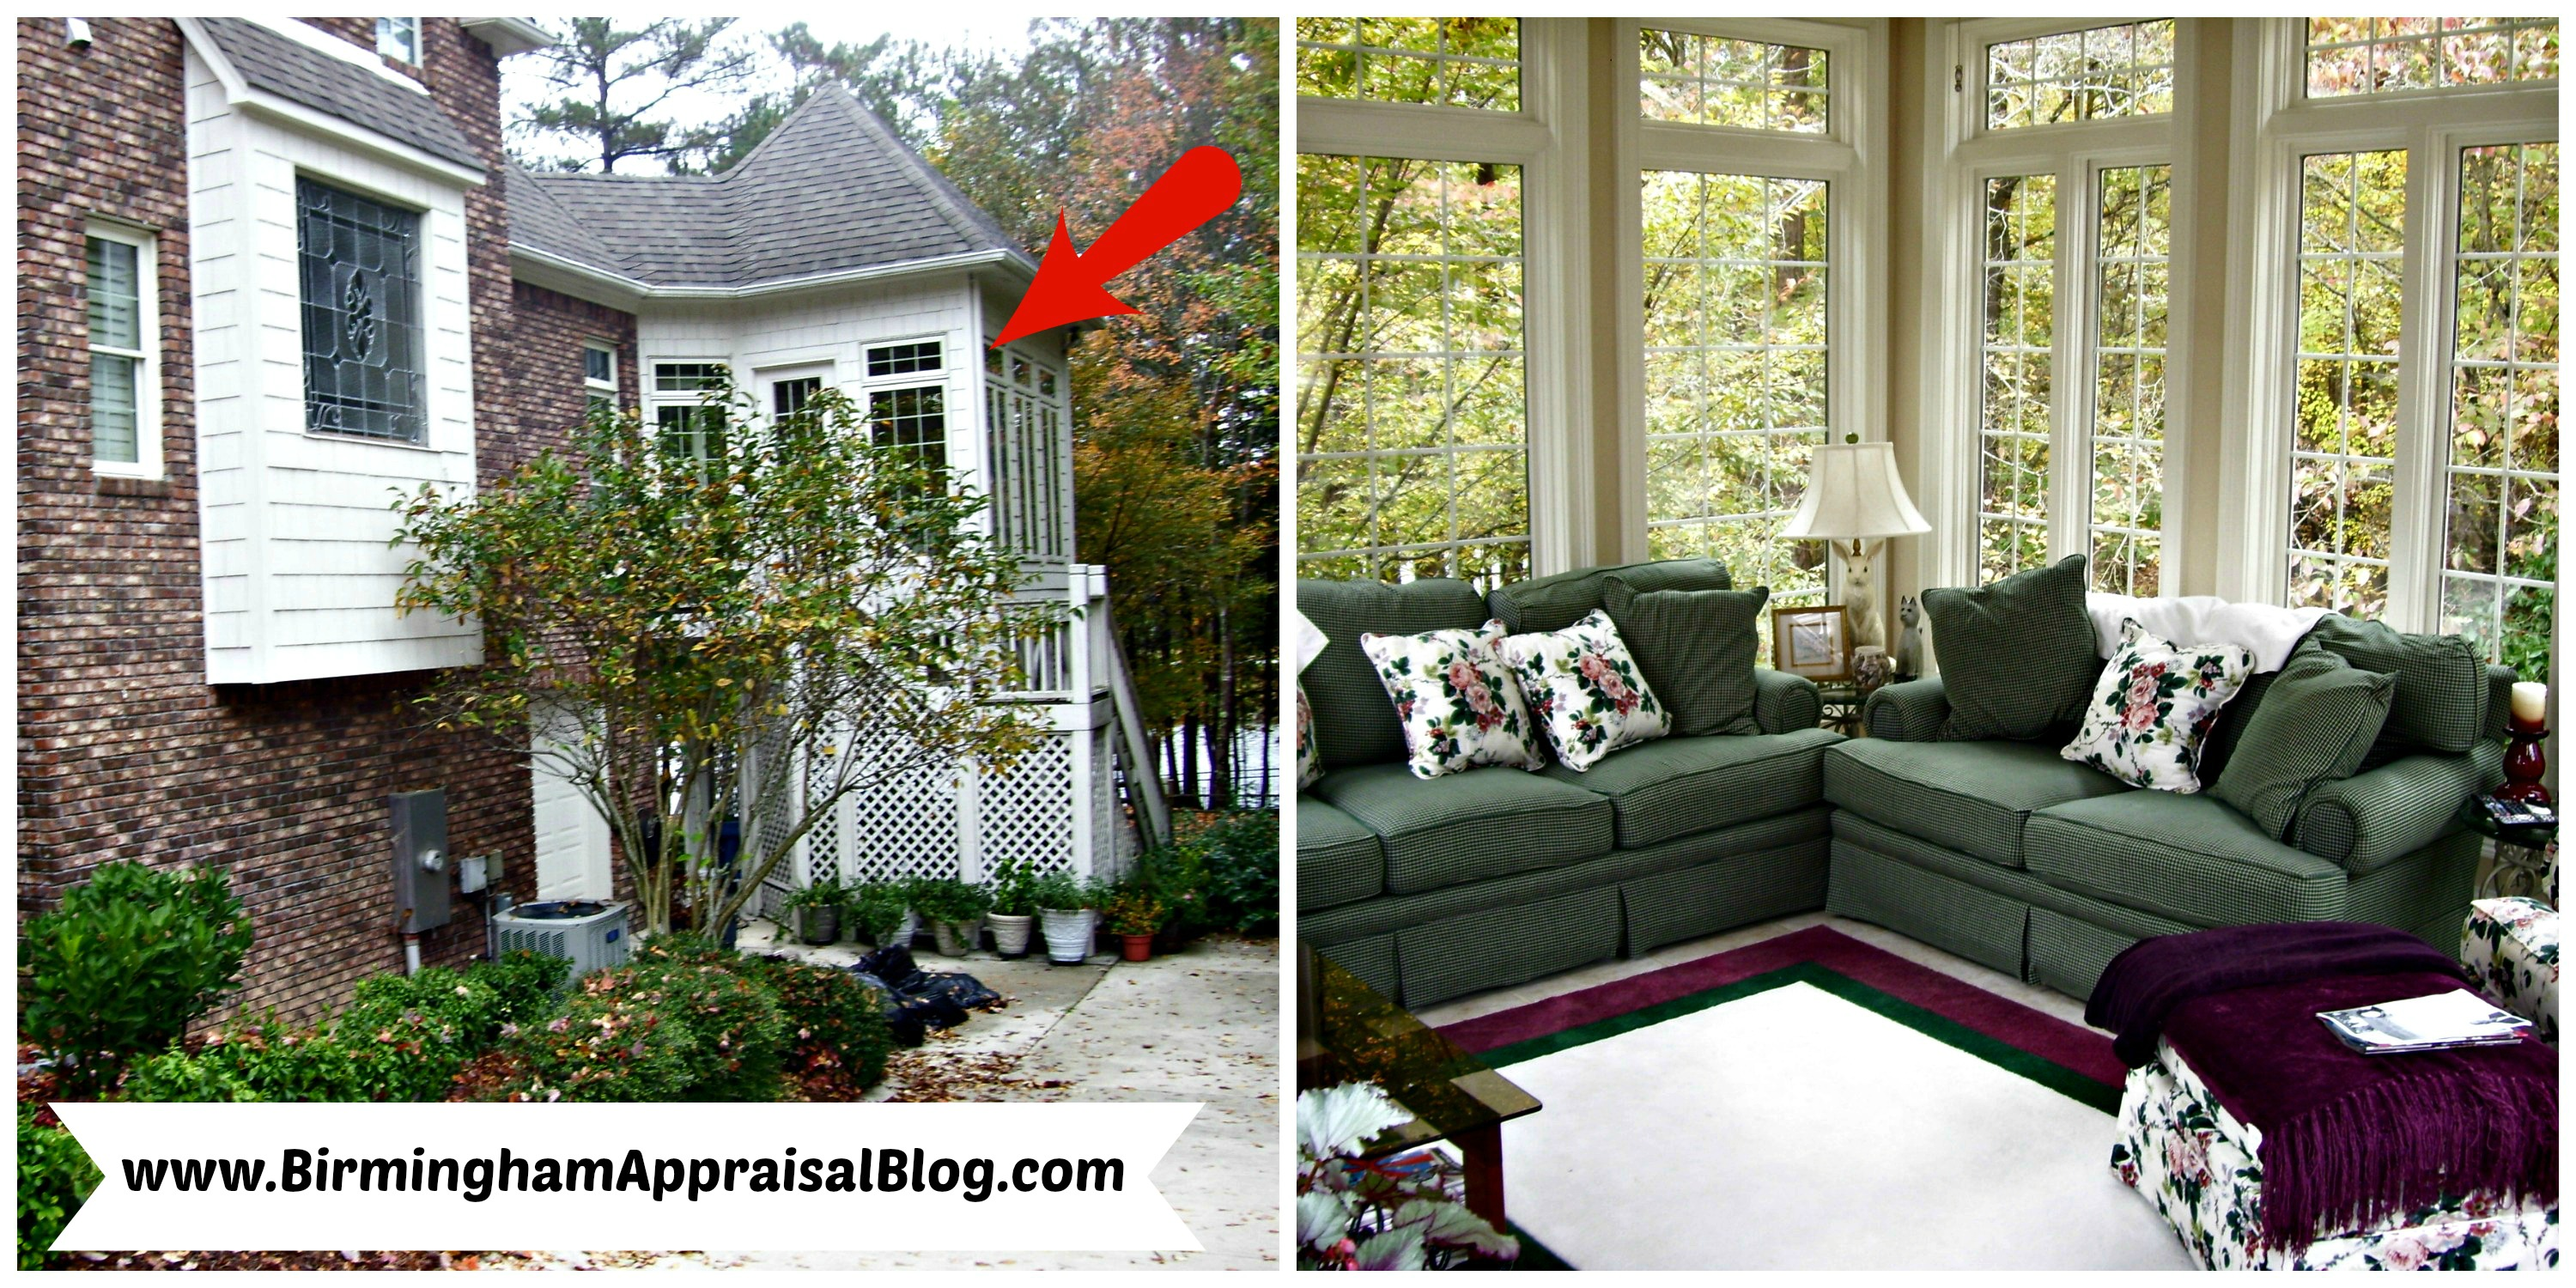 Can A Sunroom Be Included In The Gross Living Area Of A